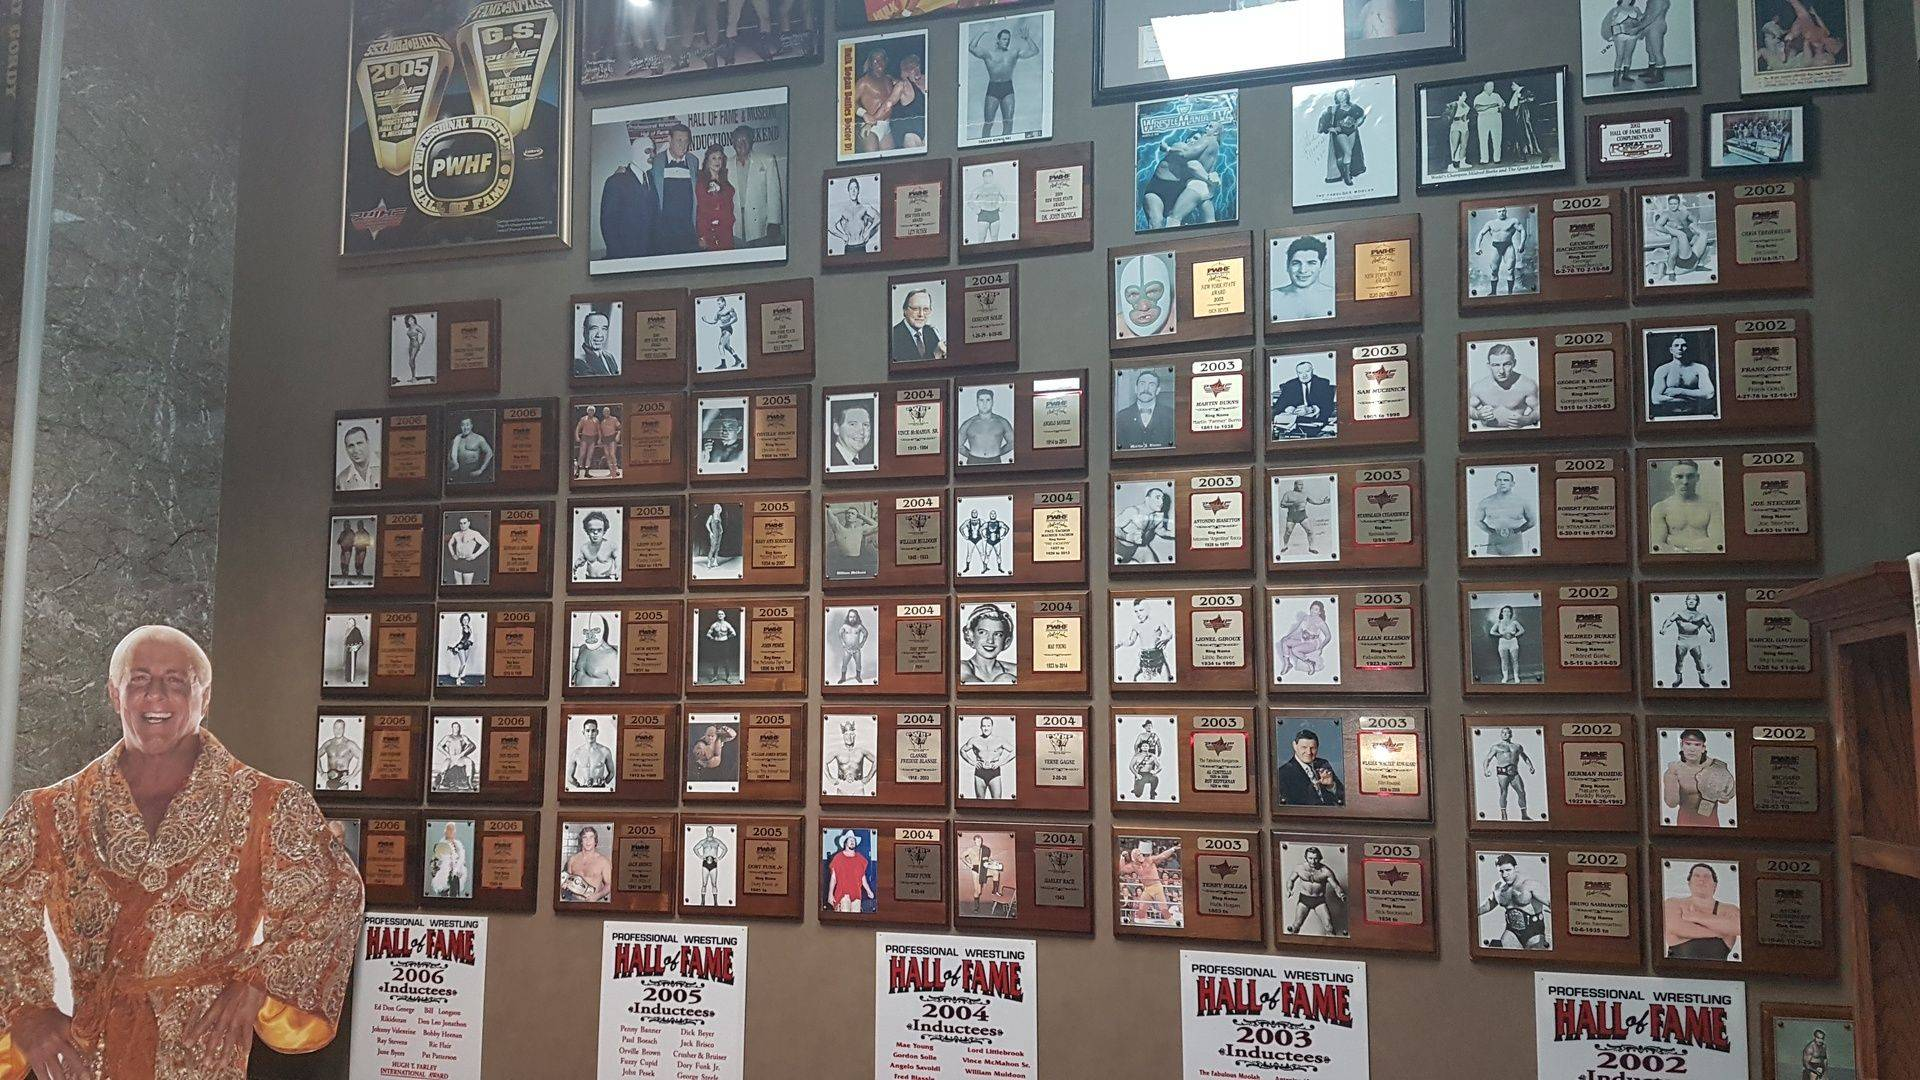 Hall of Fame plaques - complete wall of  all years